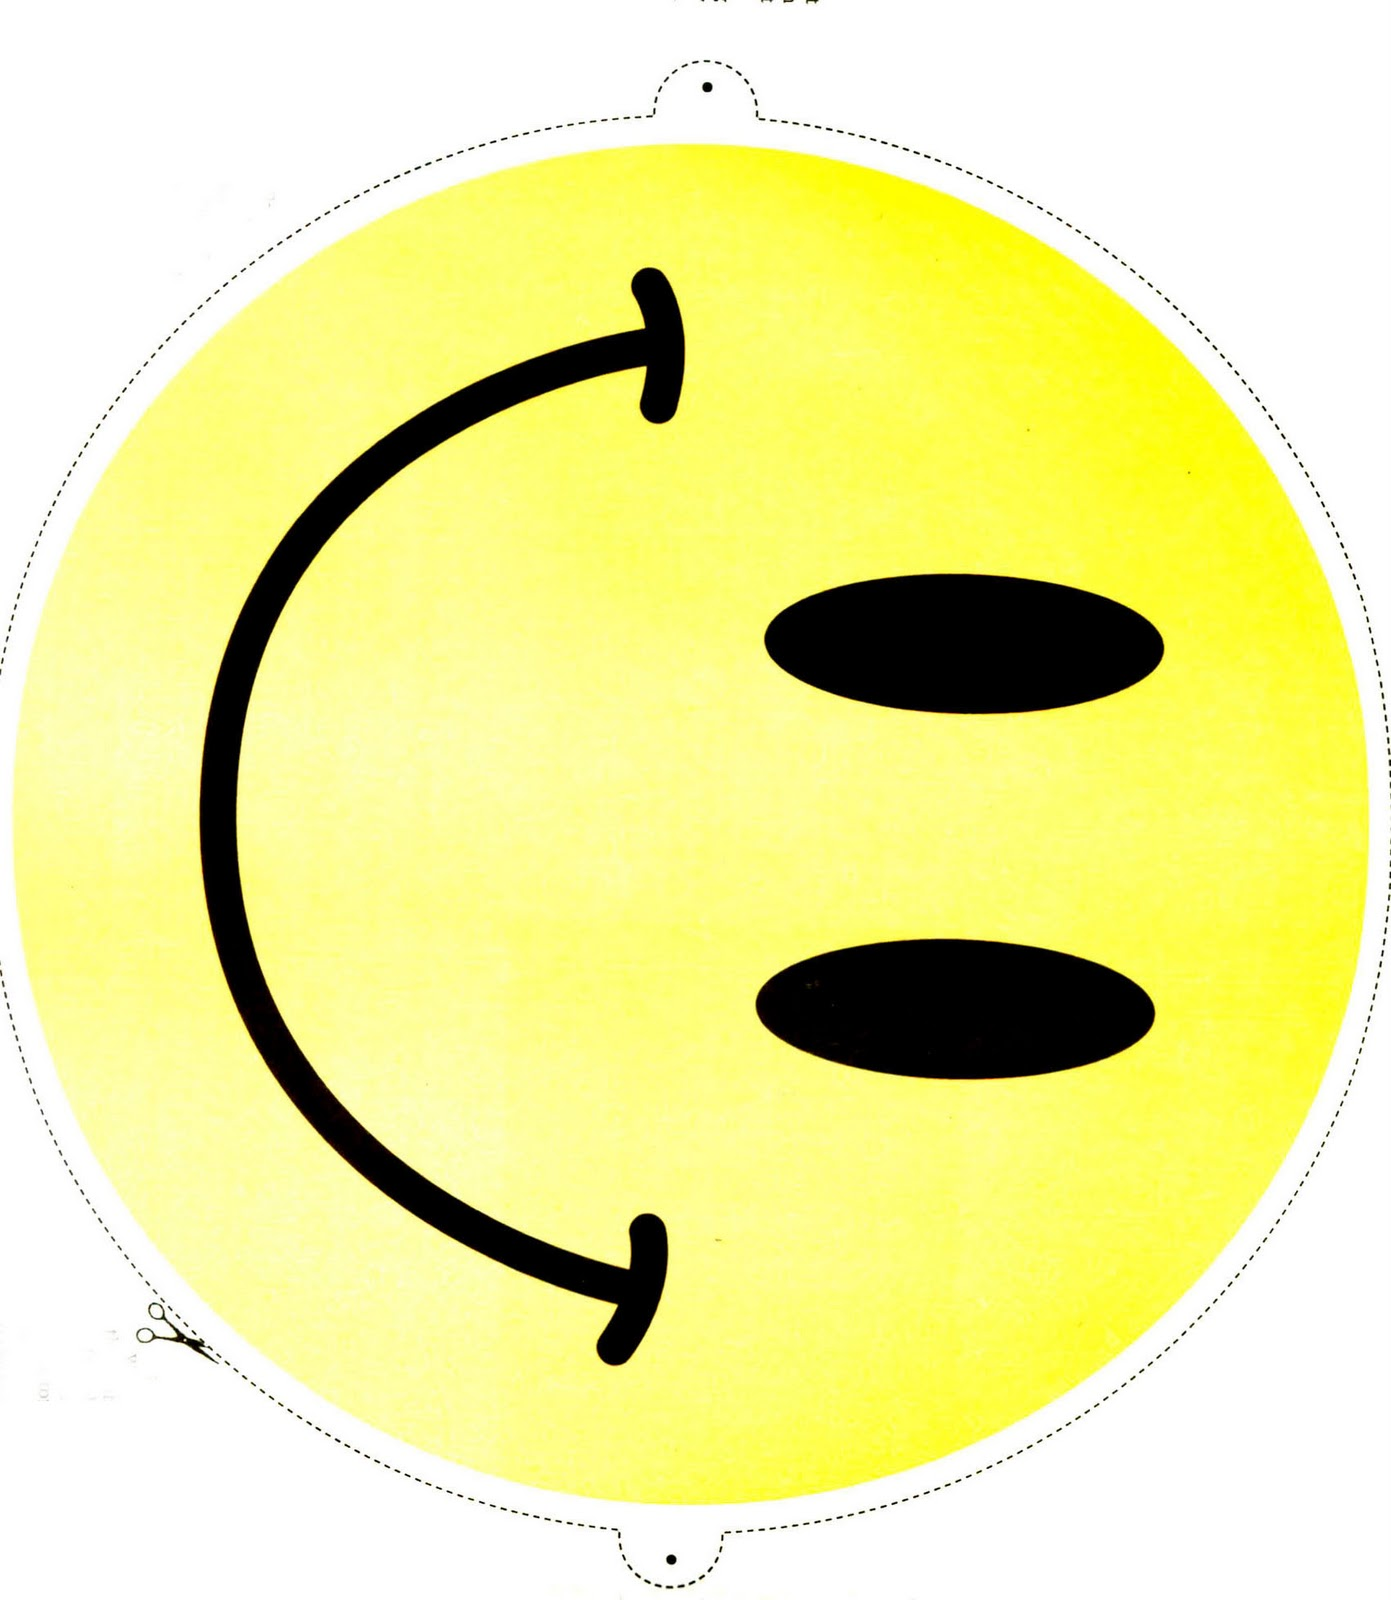 It's just a picture of Terrible Printable Smiley Faces